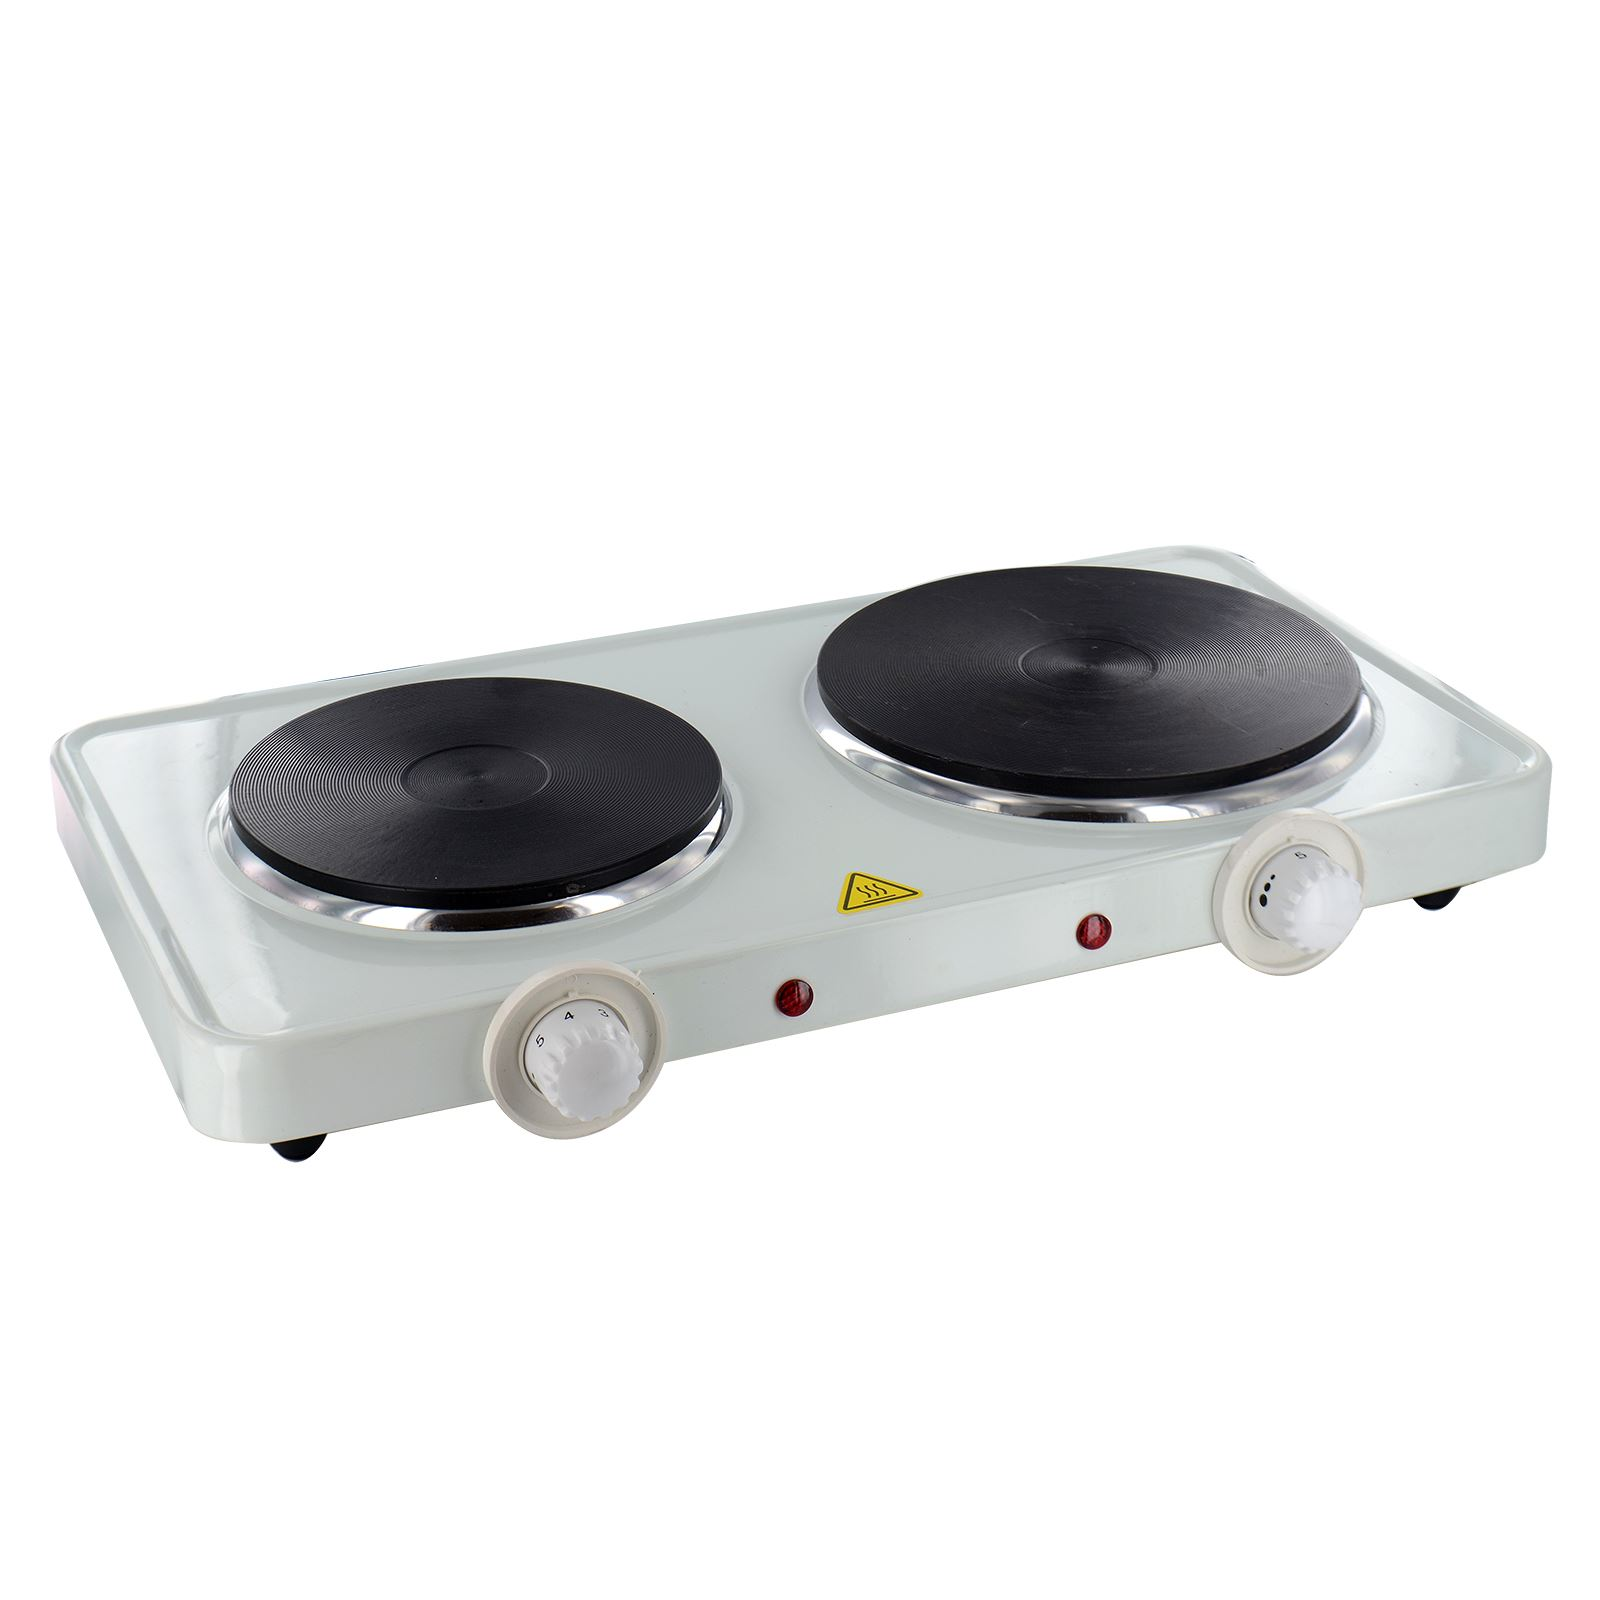 Electric Cooker Portable New Double Electric Hotplate Hob Portable Table Top Cooker